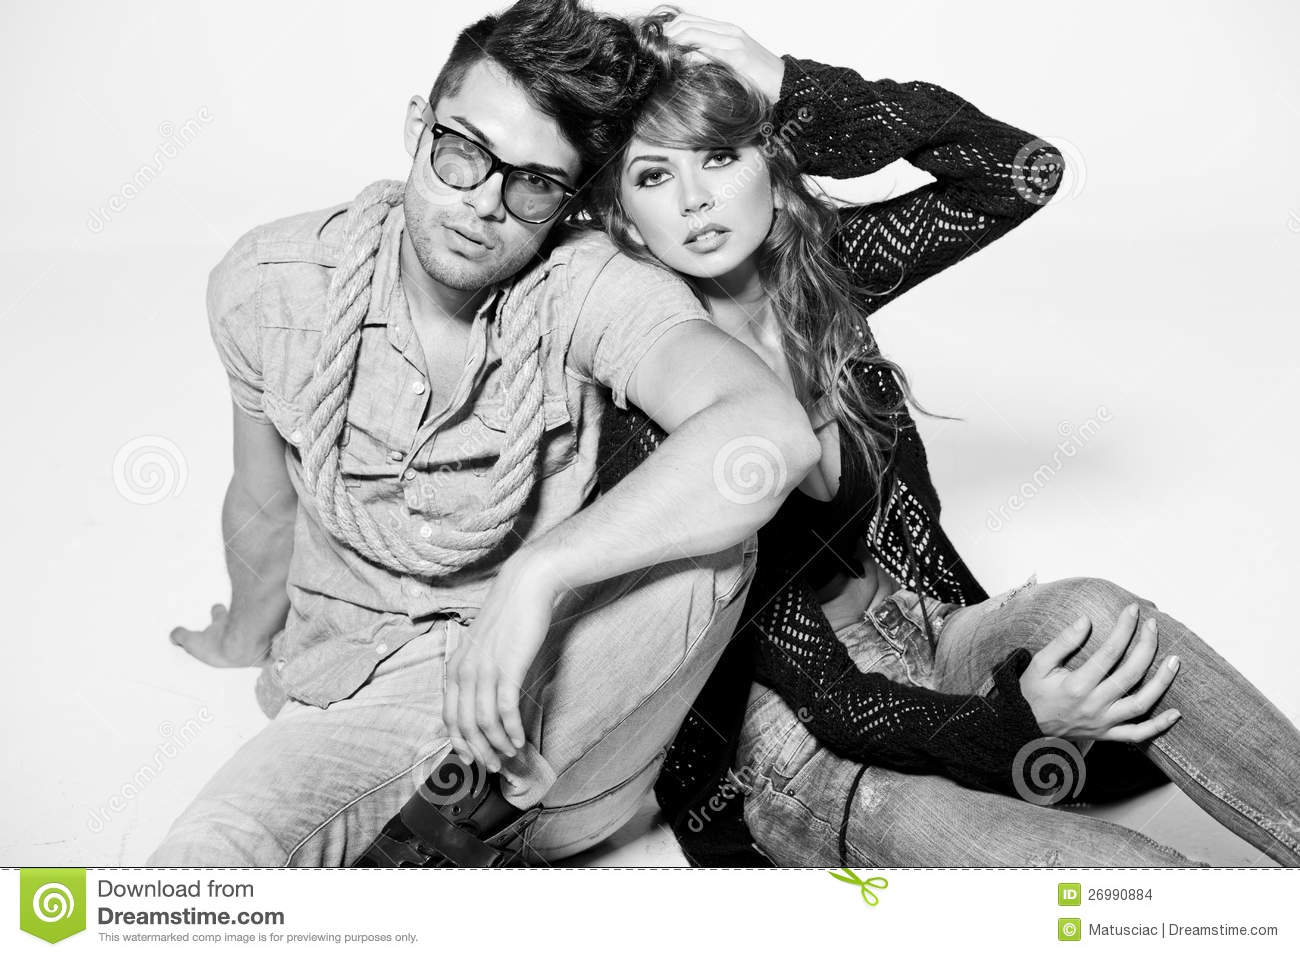 sexy pictures of men and women together